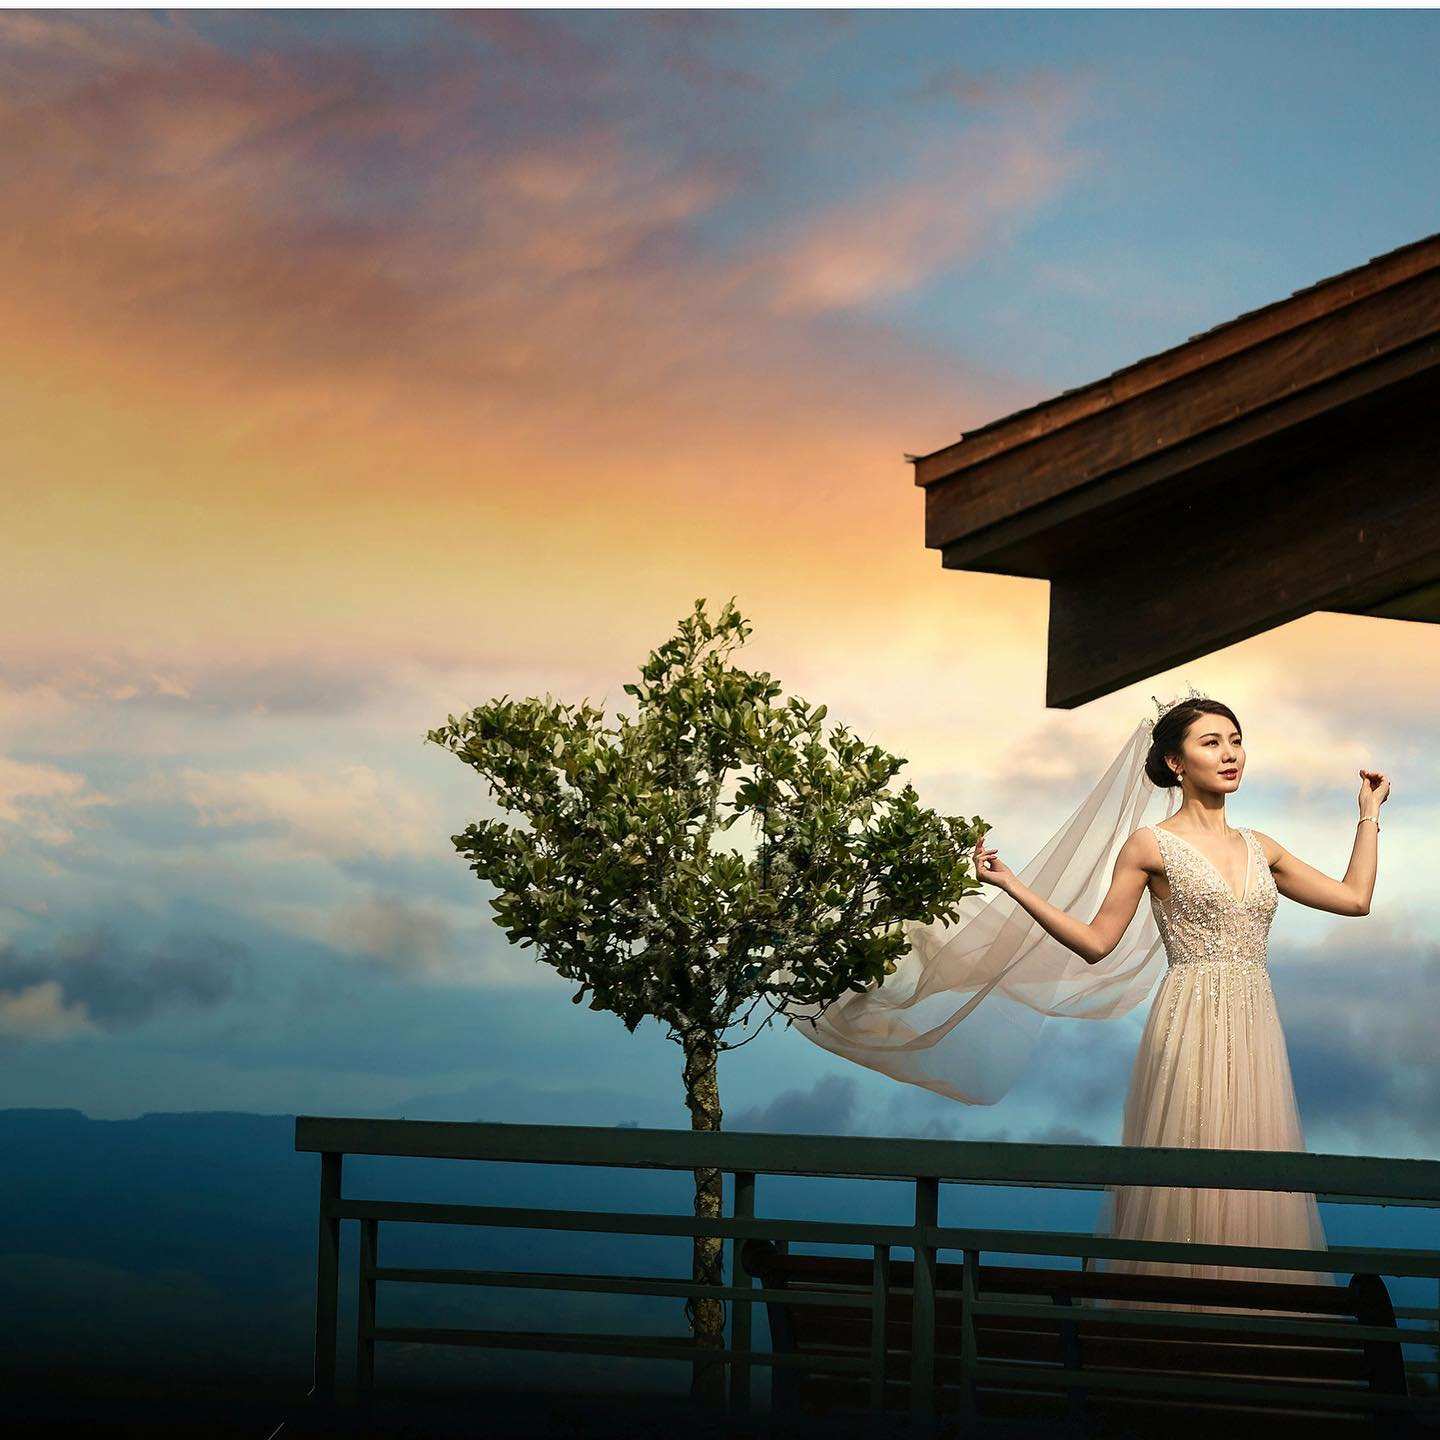 A bride standing at a balcony while posing with her veil during the blue hour